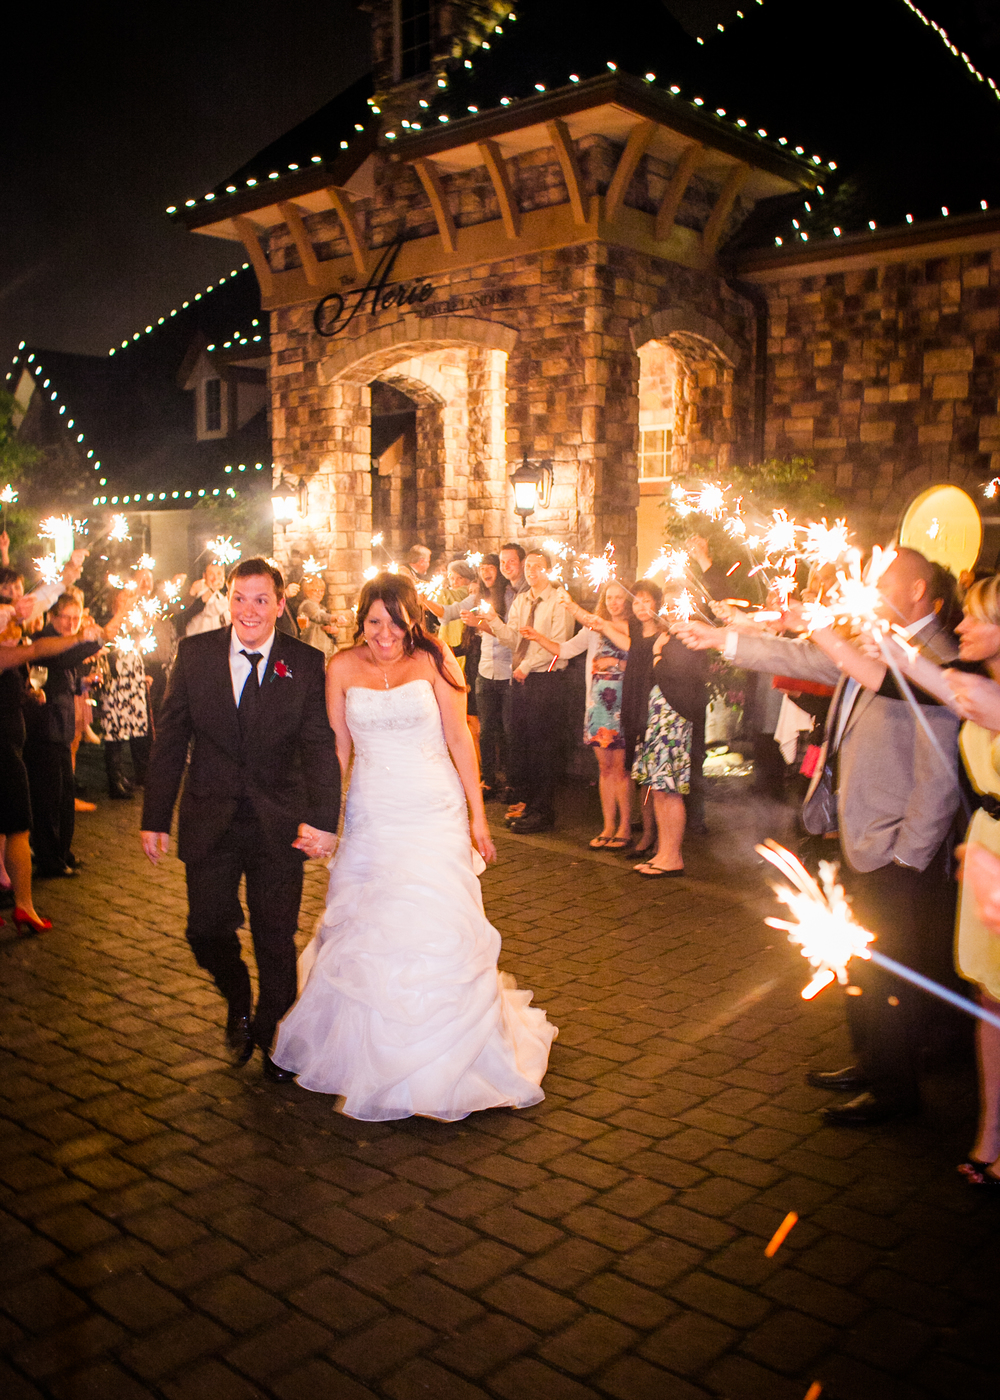 Stunning Sparkler Sendoff! One ofthe many features of TheAerie's Paris Package.